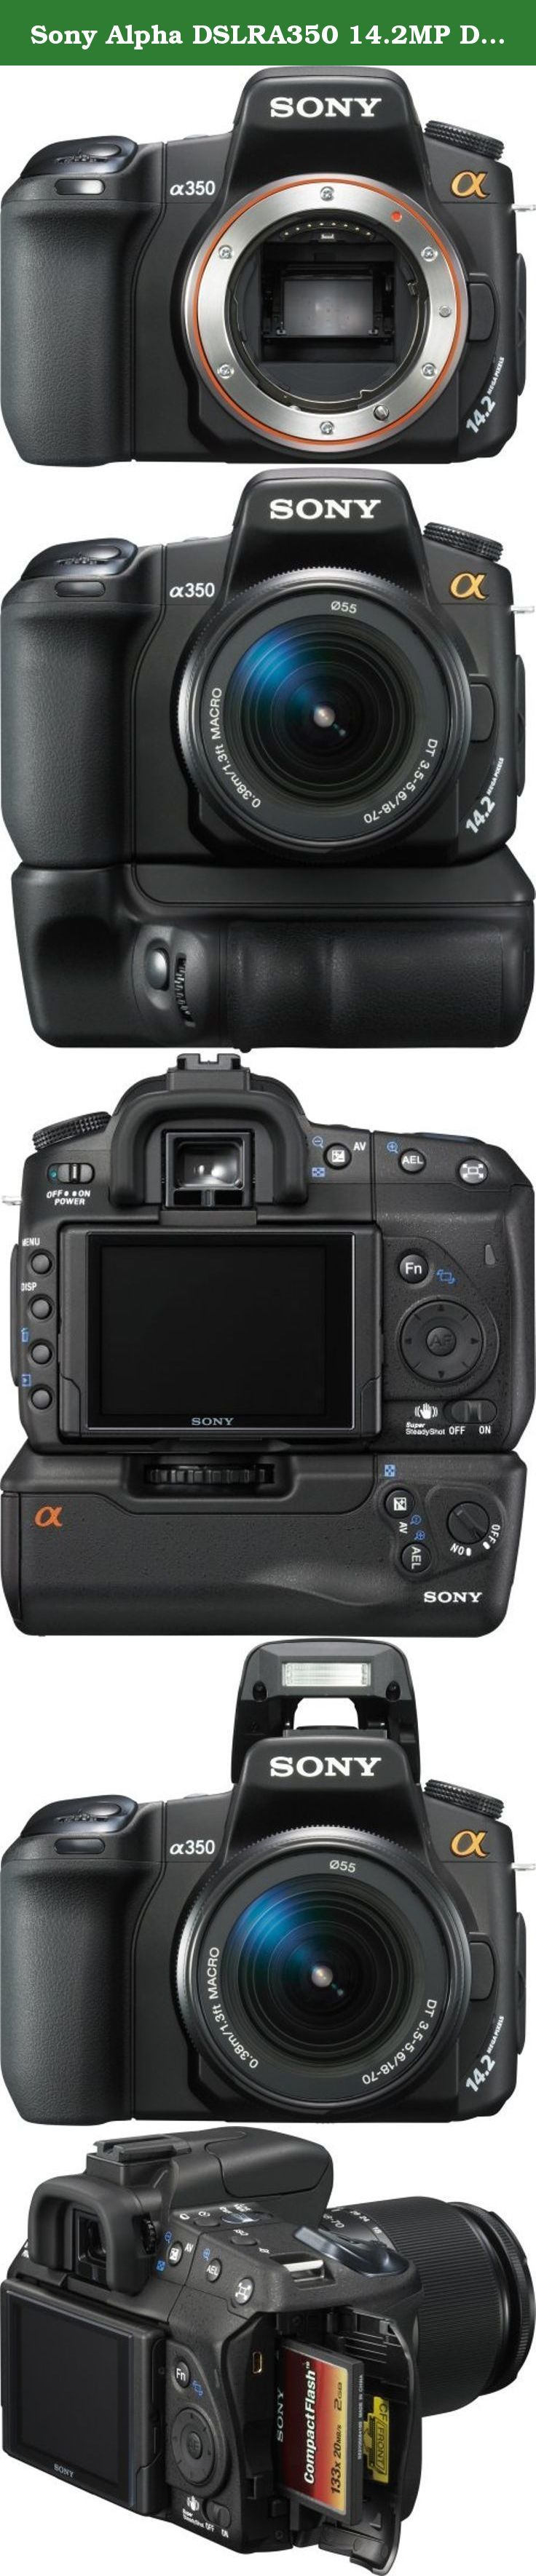 Sony Alpha DSLRA350 14.2MP Digital SLR Camera with Super SteadyShot Image Stabilization (Body Only). With incredible 14.2 MP detail, Sony¿s ¿ (alpha) DSLR-A350 raises the standard of excellence for step-up digital photographers shooting both family memories and fine-art photos. Live Preview in a large 2.7¿ LCD screen links you and your subject -- and you¿ll have special features like super-quick AF response, continuous shooting at 2 fps while you see your subject in the viewfinder…